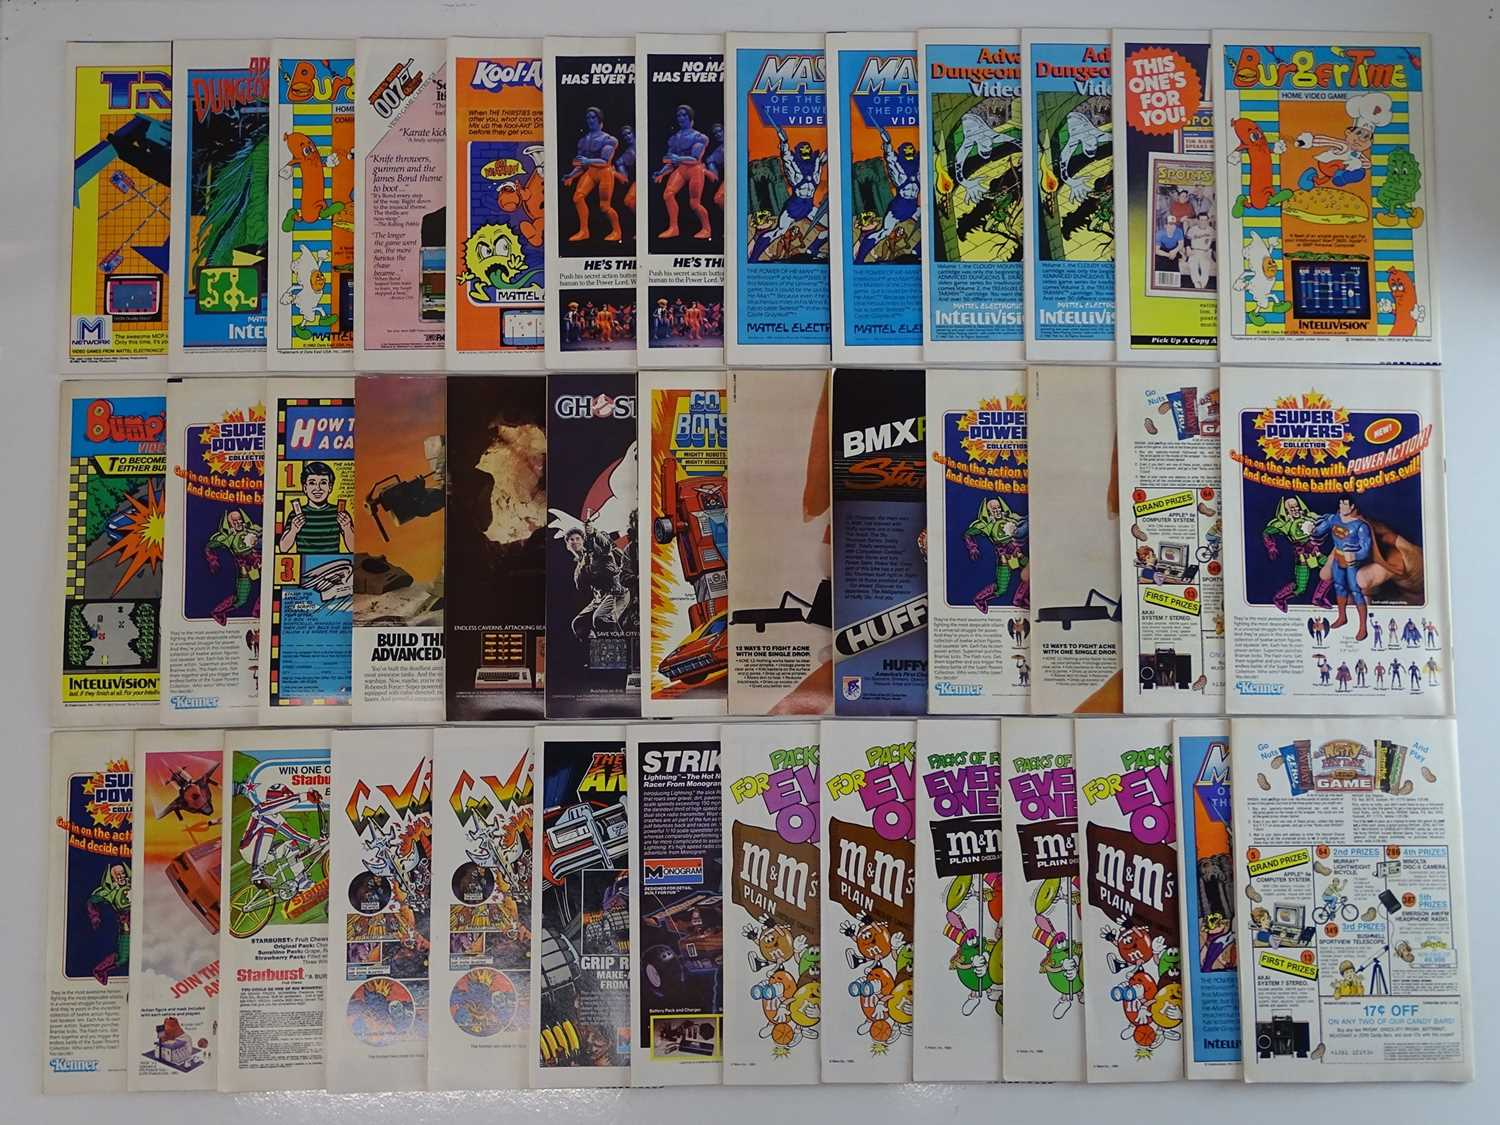 BATMAN & THE OUTSIDERS #1 to 38 + ANNUALS #1 & 2 - (40 in Lot) - (1983/86 - DC) - Complete - Image 2 of 2